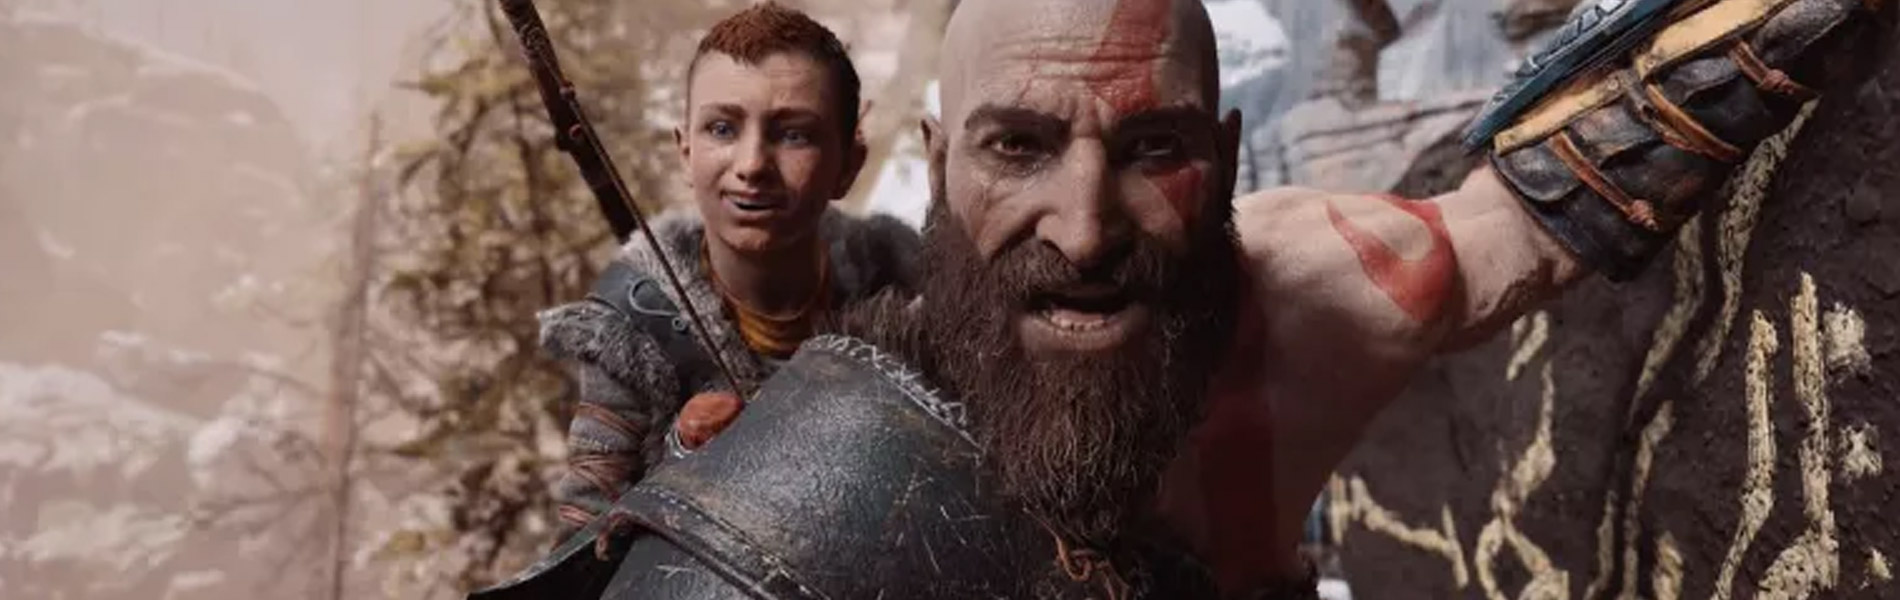 Redefining Fatherhood Through Kratos